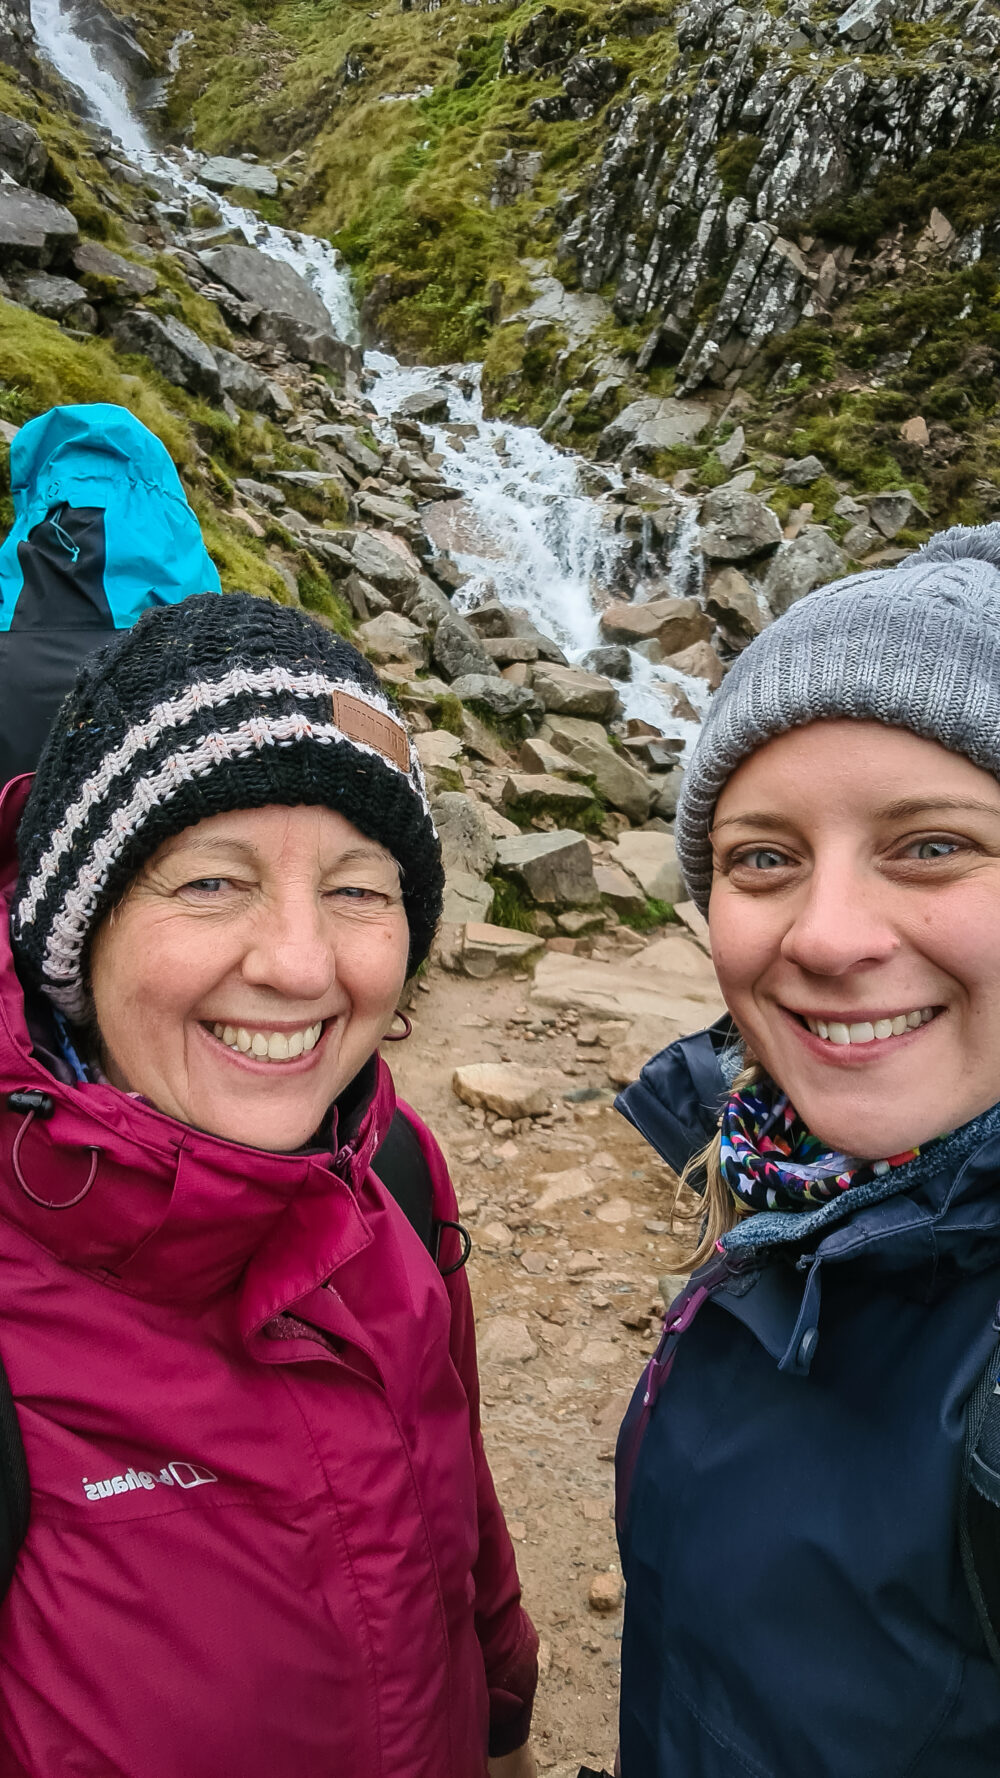 Holly and her Mom on the way back down from Ben Nevis summit with Large Outdoors